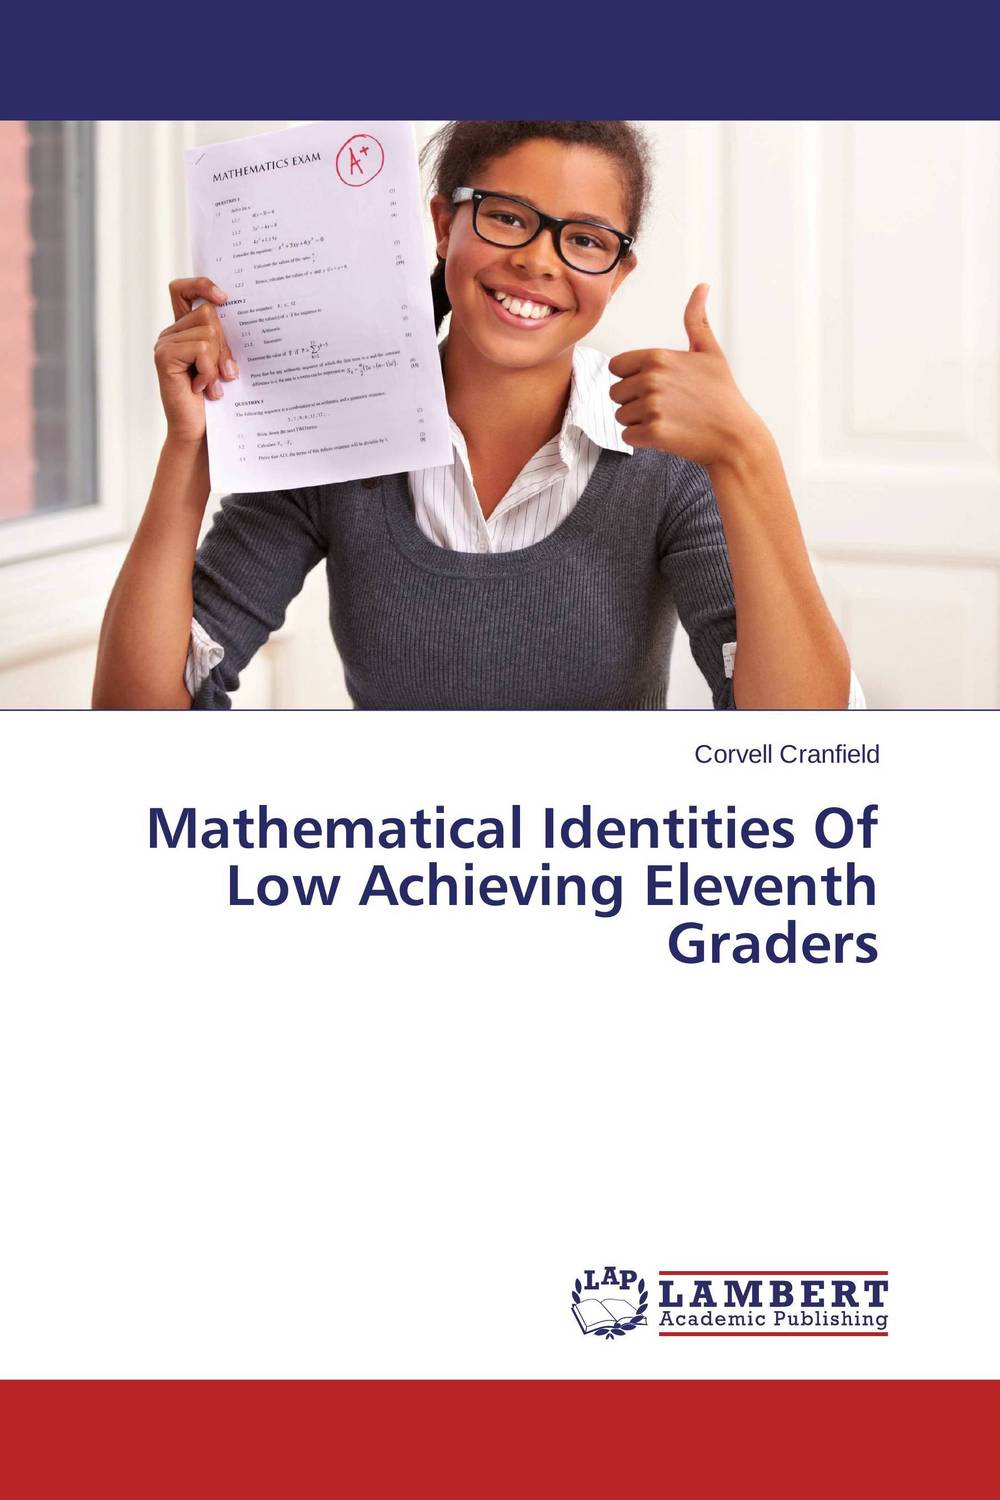 Mathematical Identities Of Low Achieving Eleventh Graders